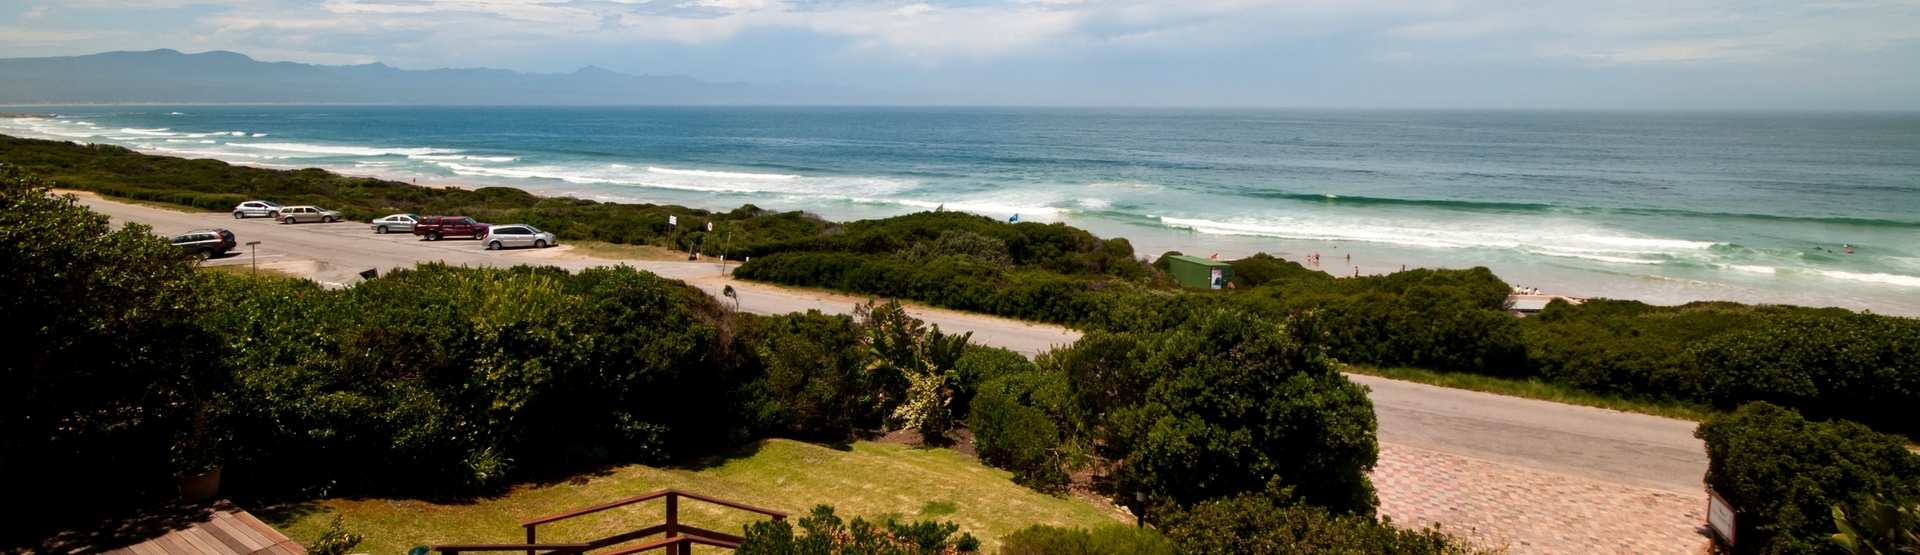 The Robberg Beach Lodge Plettenberg Bay View